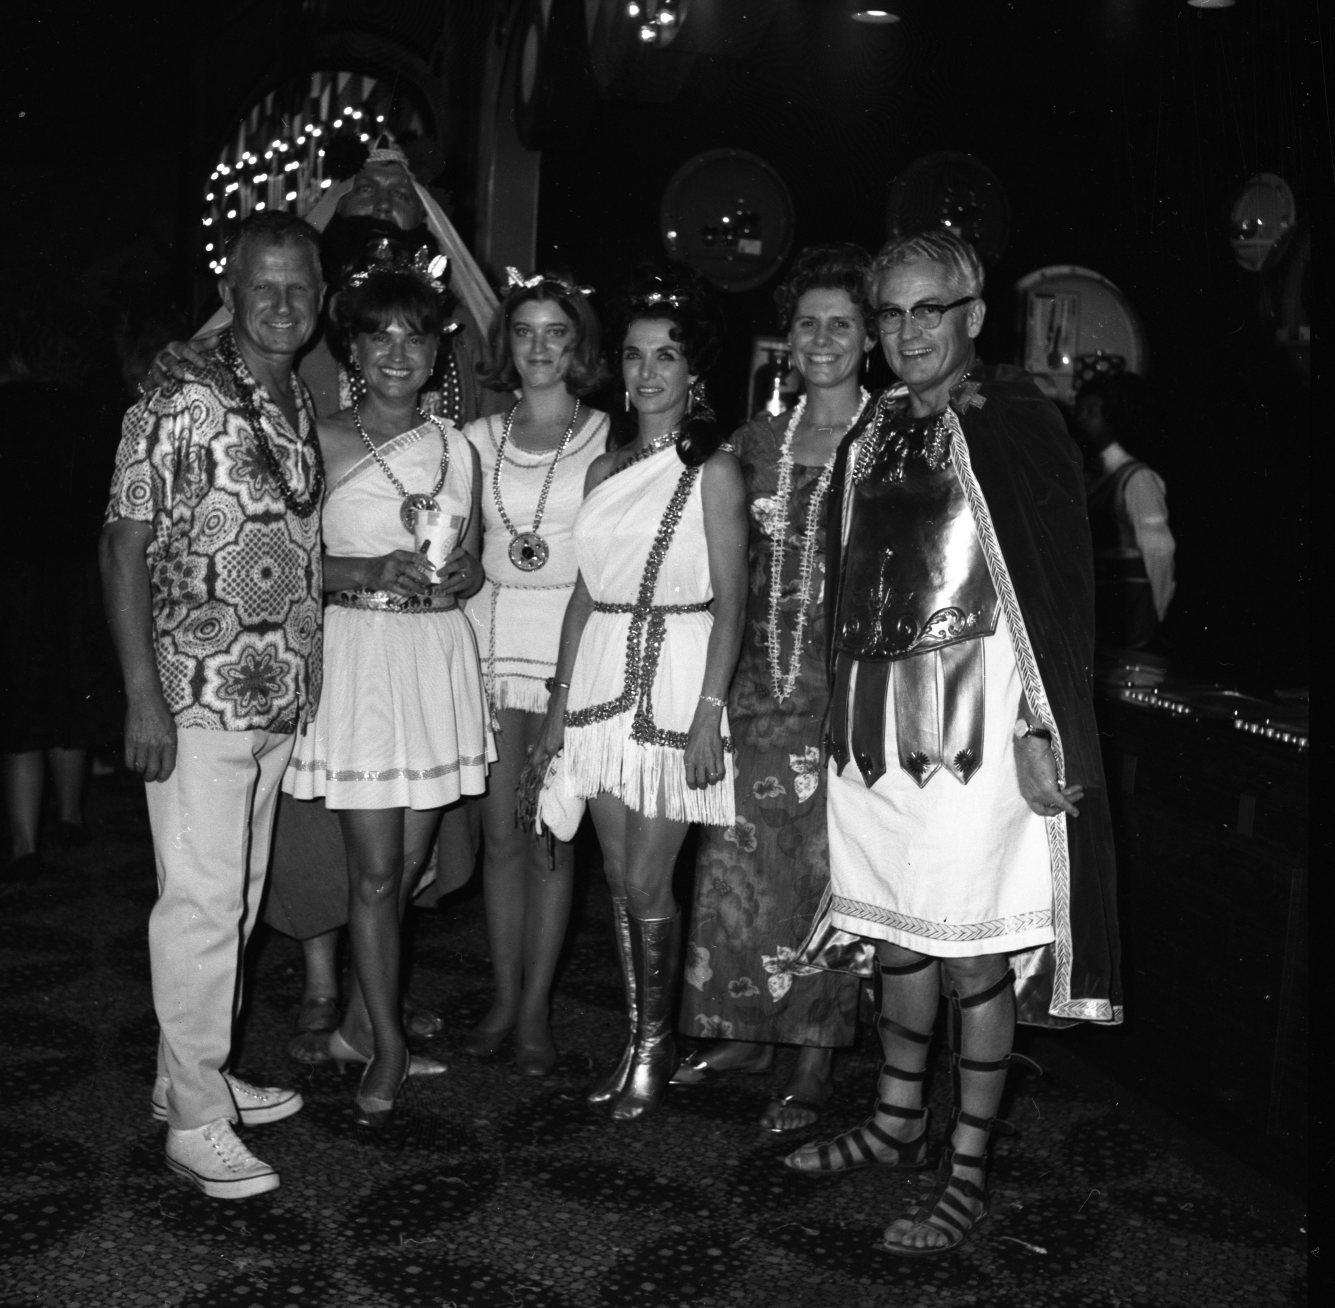 Tourists hang out with the staff at Caesars Palace